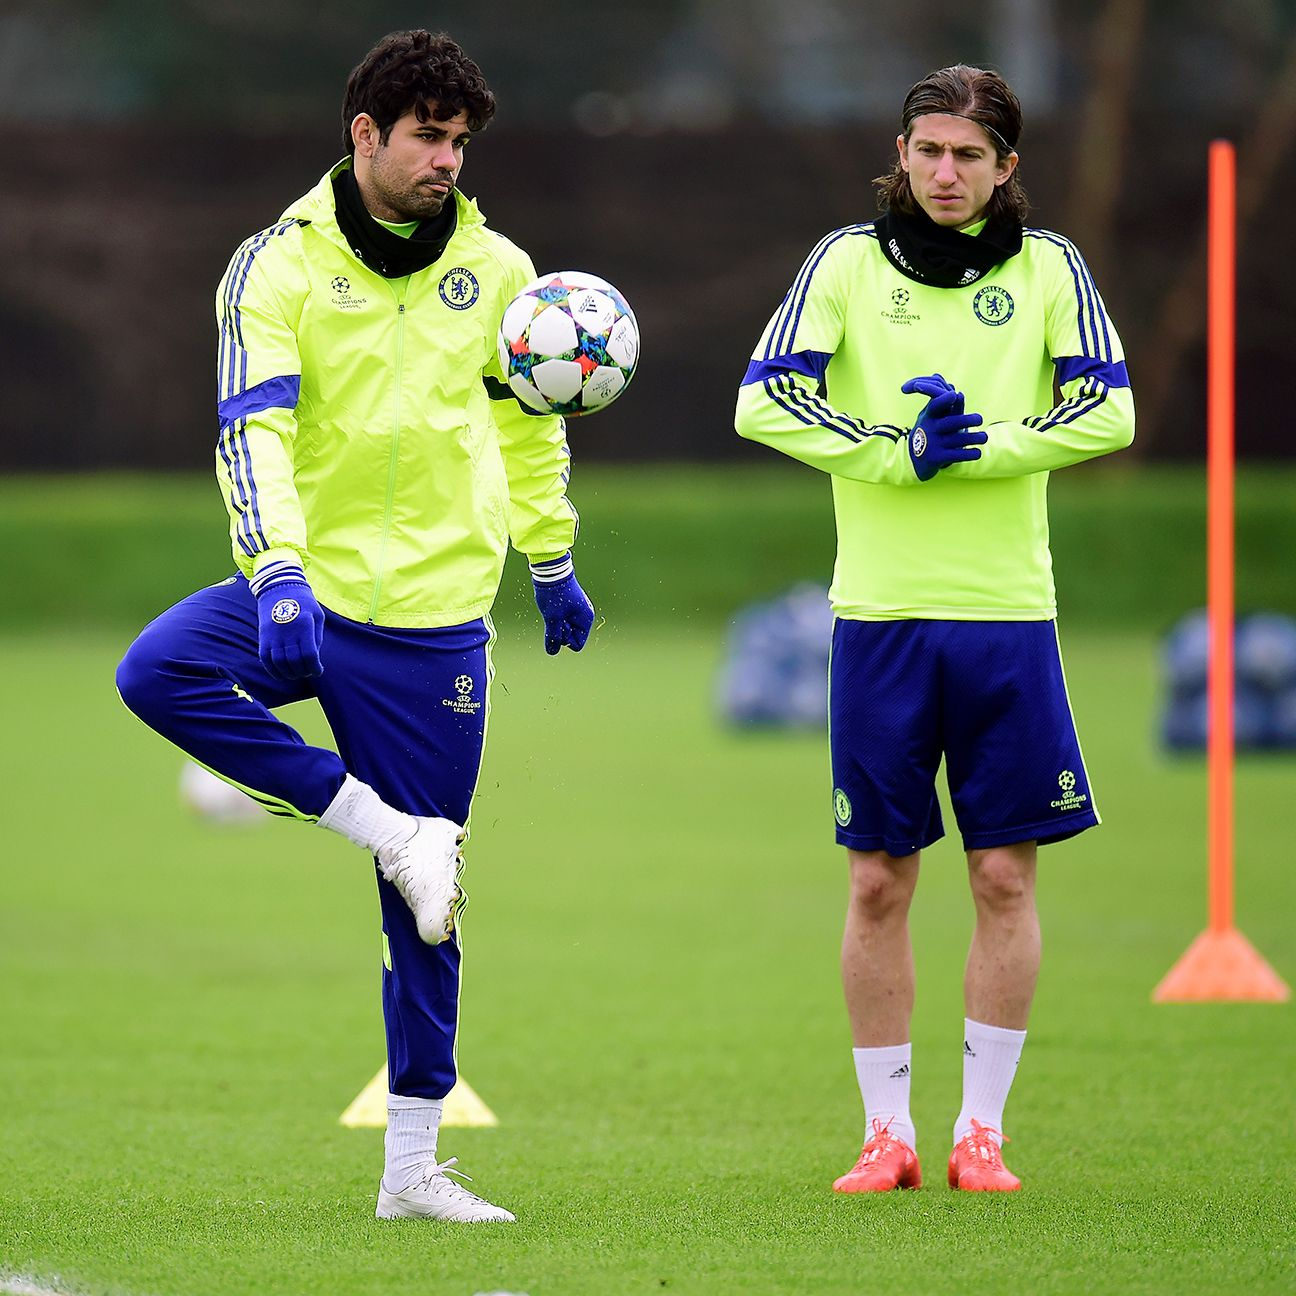 After winning the 2013-14 La Liga title with Atletico Madrid, Diego Costa, left, and Filipe Luis, right, made their way north to Stamford Bridge.